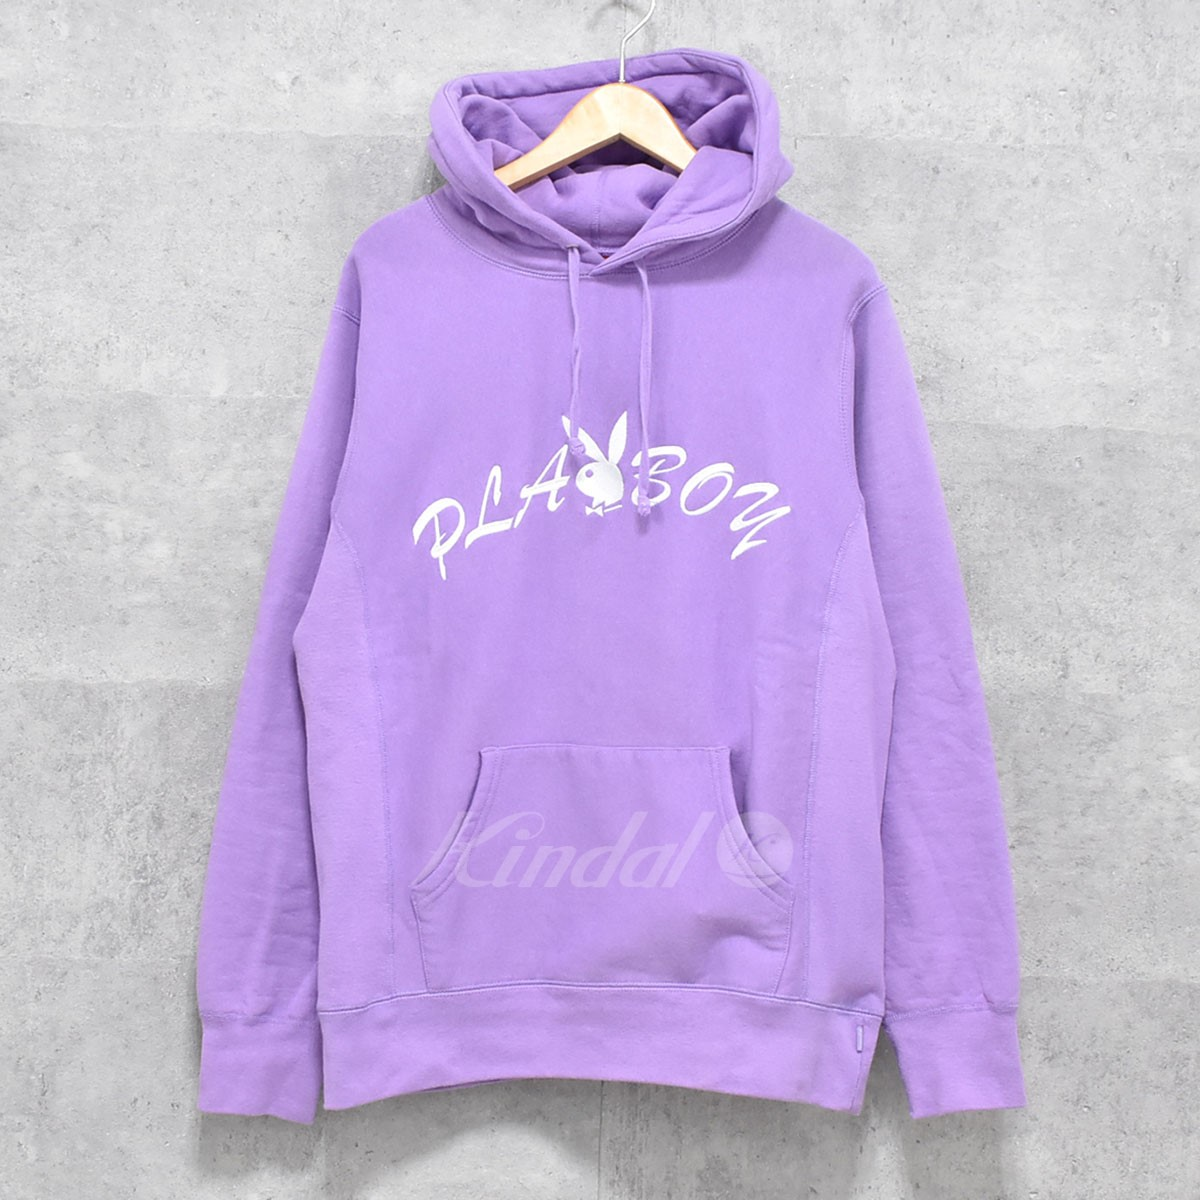 【中古】SUPREME×PLAY BOY 17SS Hooded Sweatshirt プルオーバーパーカー 【送料無料】 【080685】 【KIND1550】